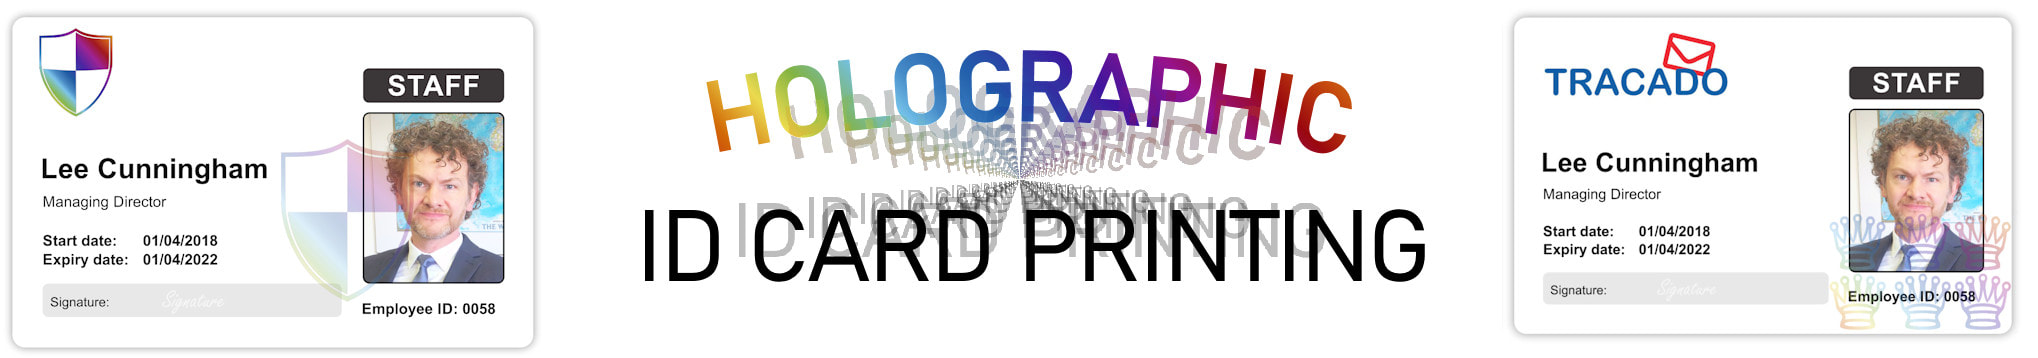 Newcastle holographic ID card print service. Employee Identity cards with hologram or holograph security mark.